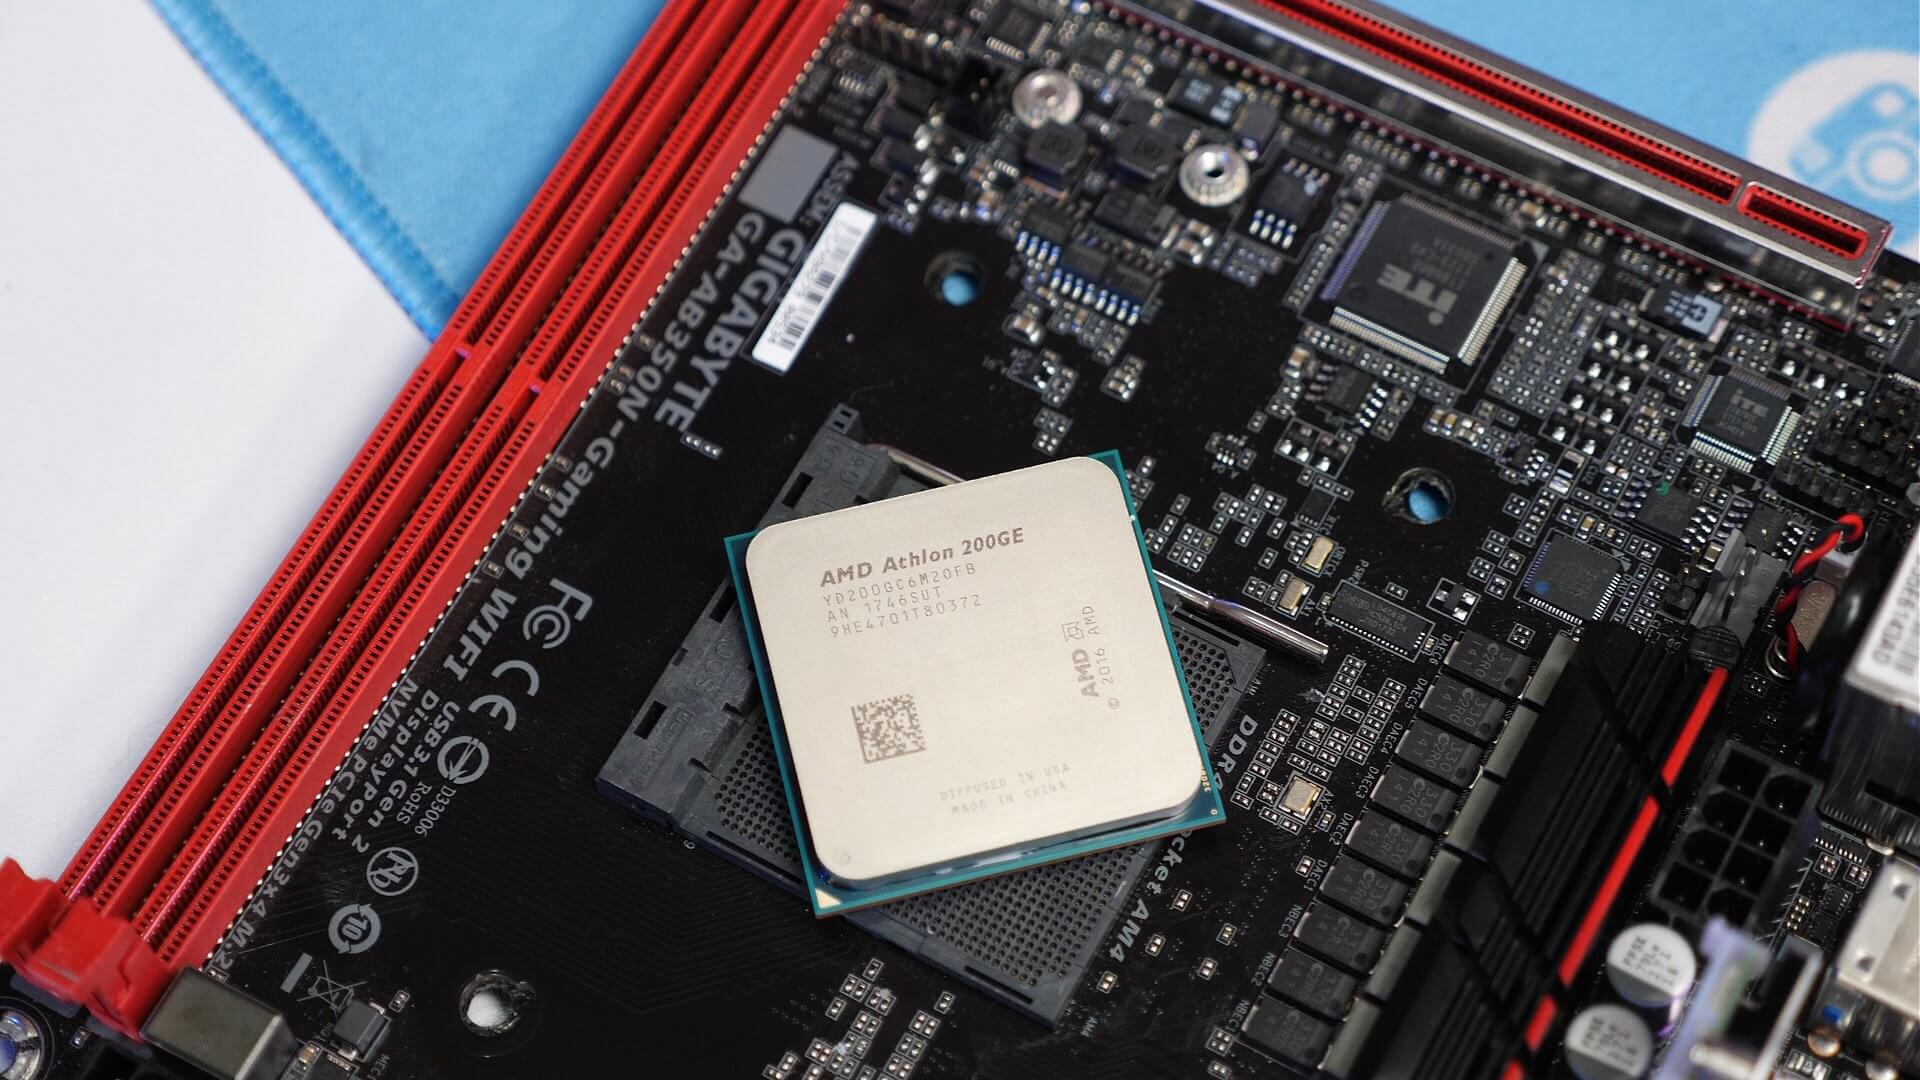 Amd Athlon 200ge Review 55 Zen Cpu Who Is It For